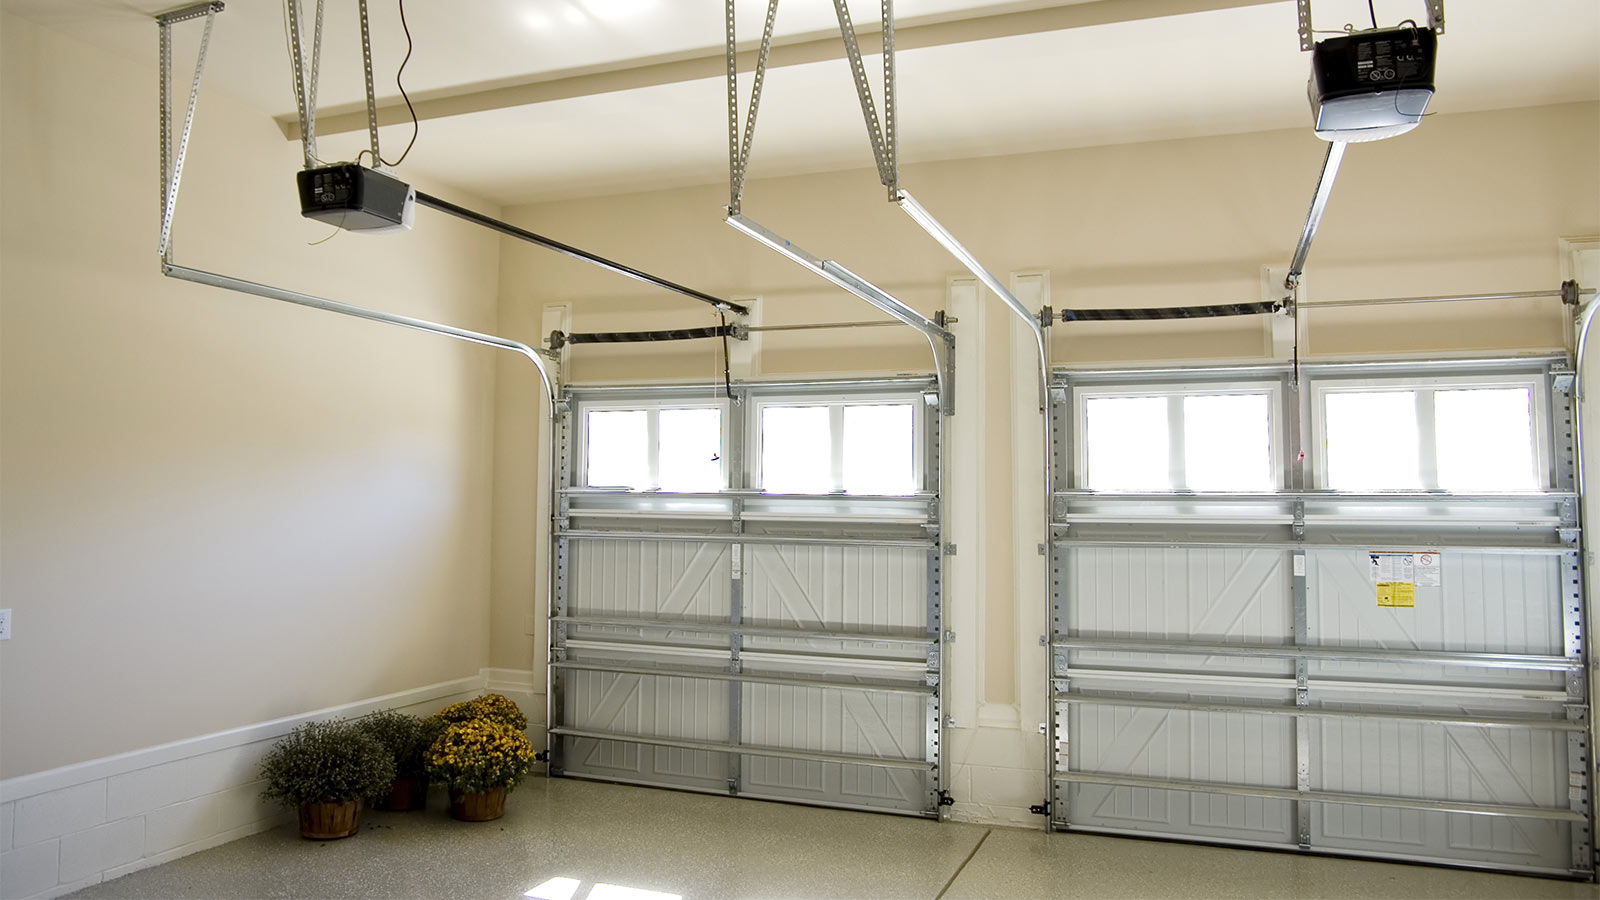 Sectional Garage Doors from High Speed Roller Shutters Chelmsford suppliers.